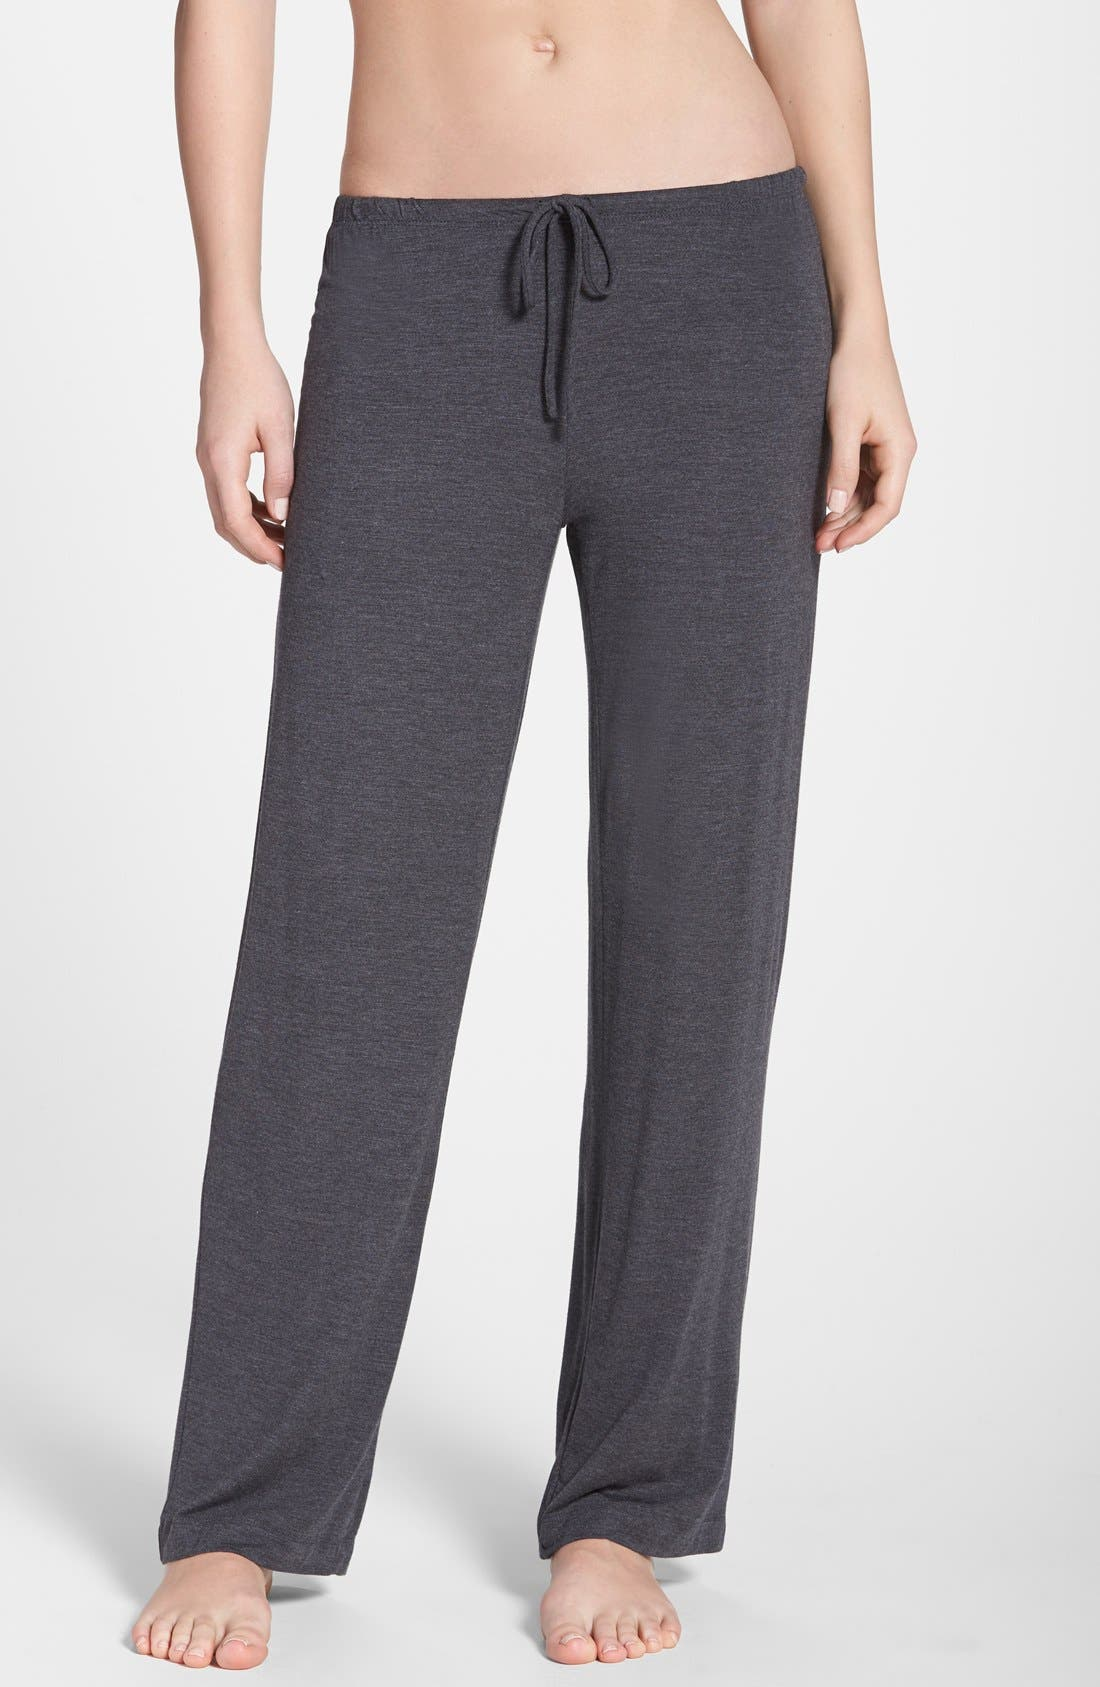 Alternate Image 1 Selected - DKNY 'Urban Essentials' Lounge Pants